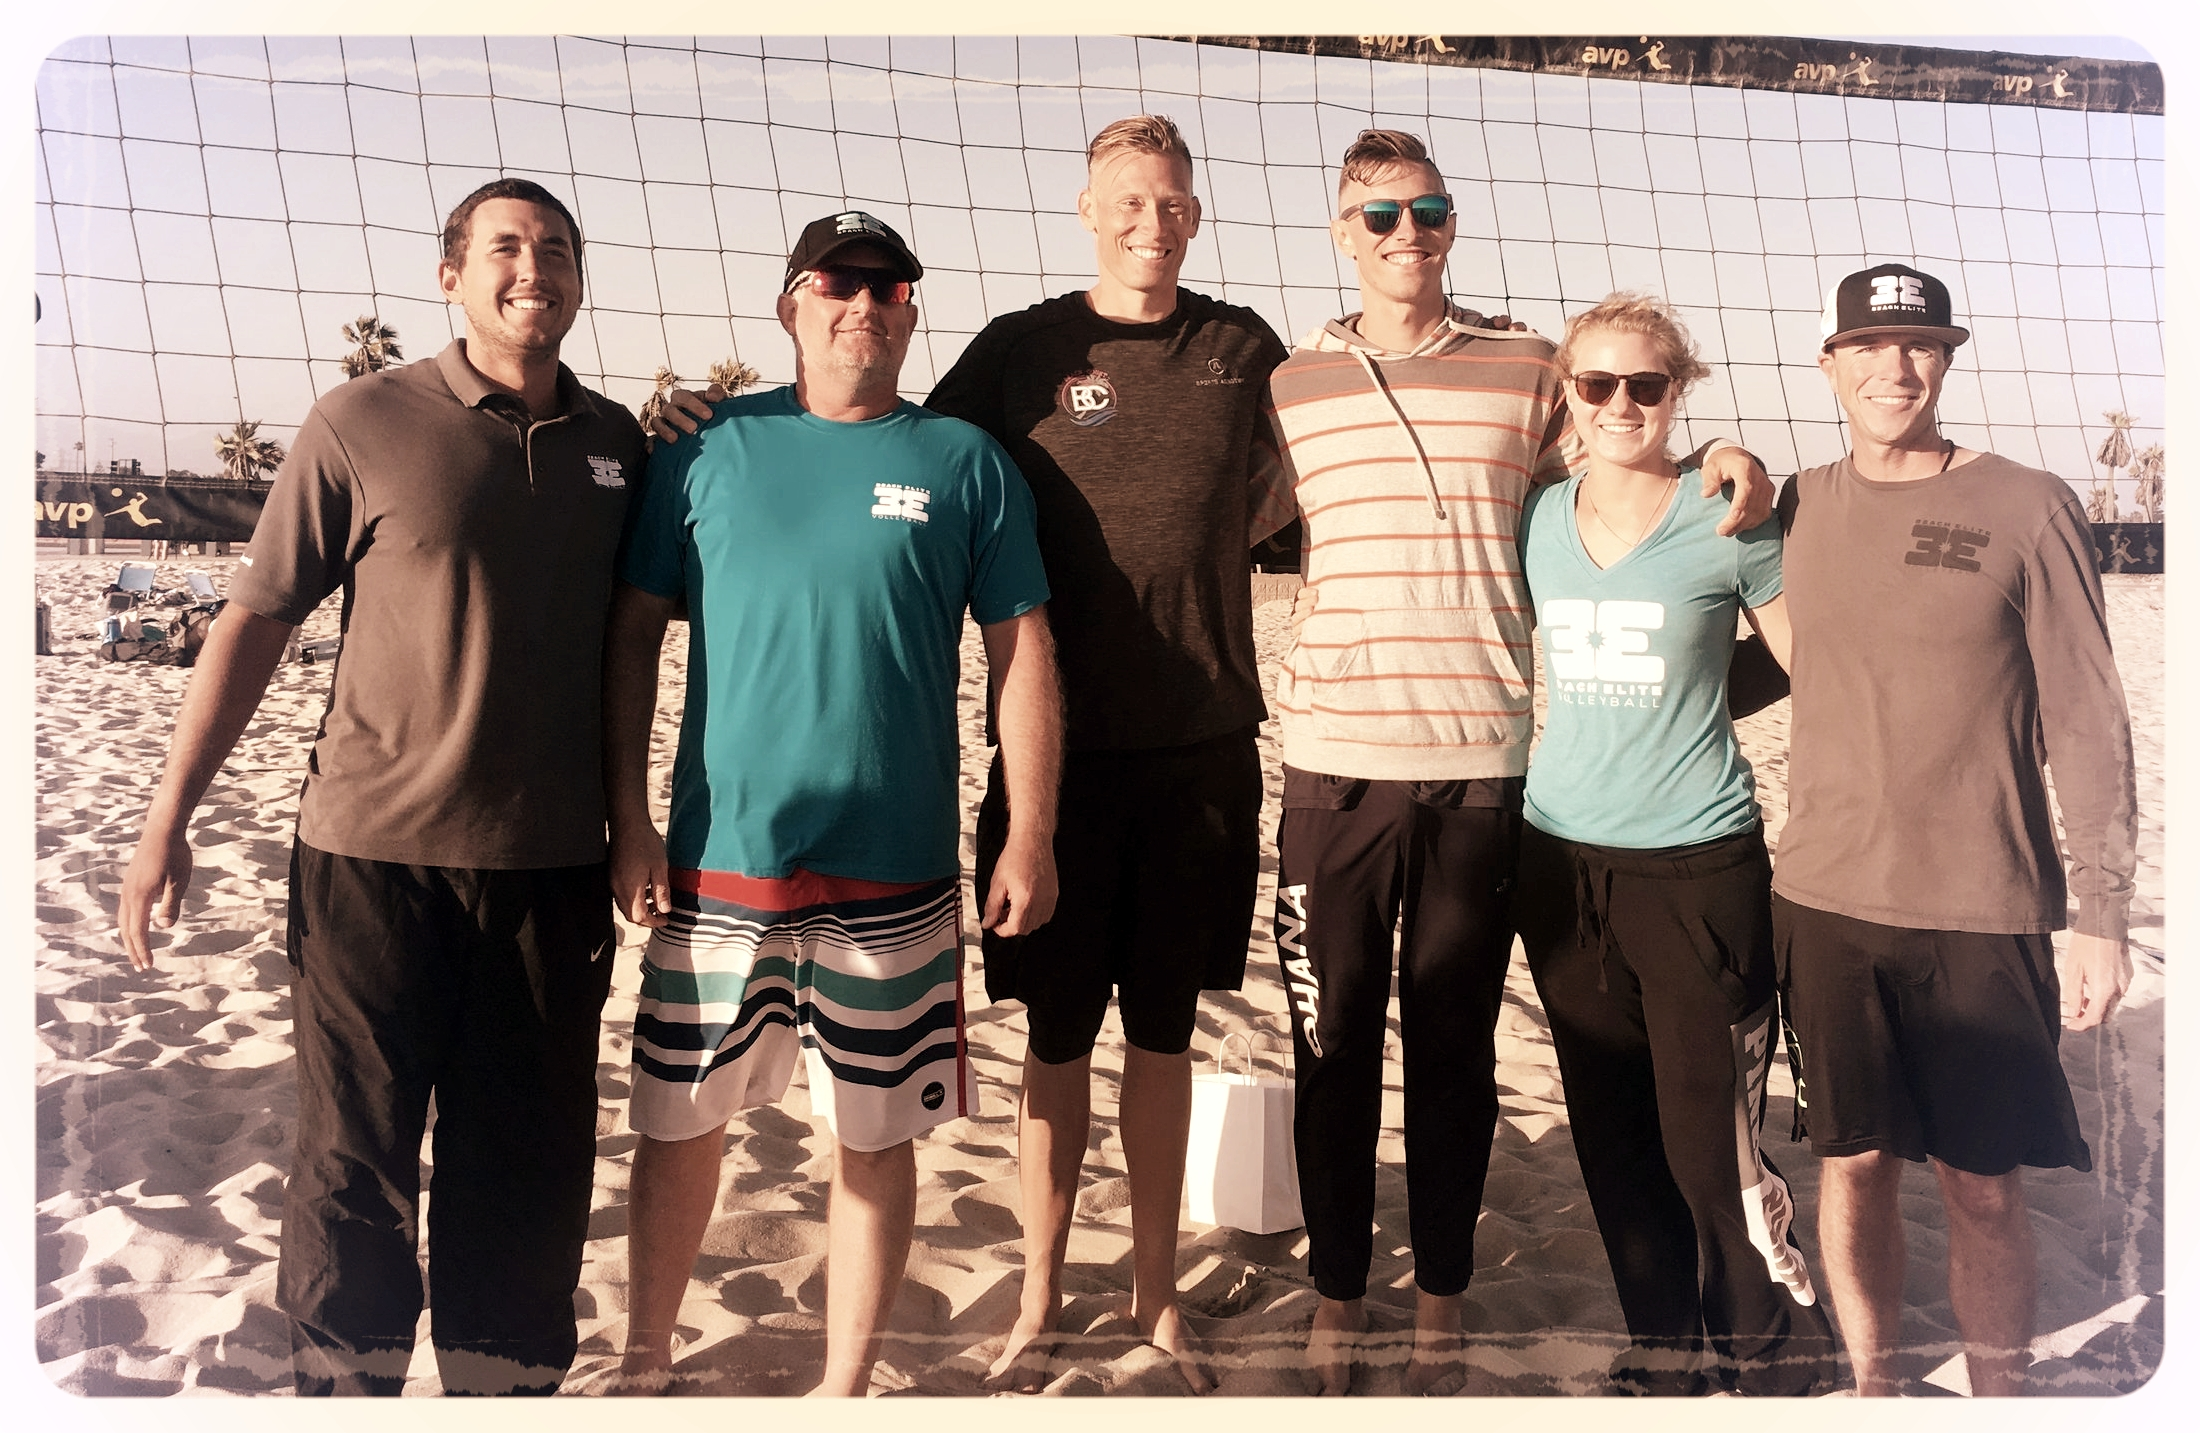 casey patterson and beach elite coaches